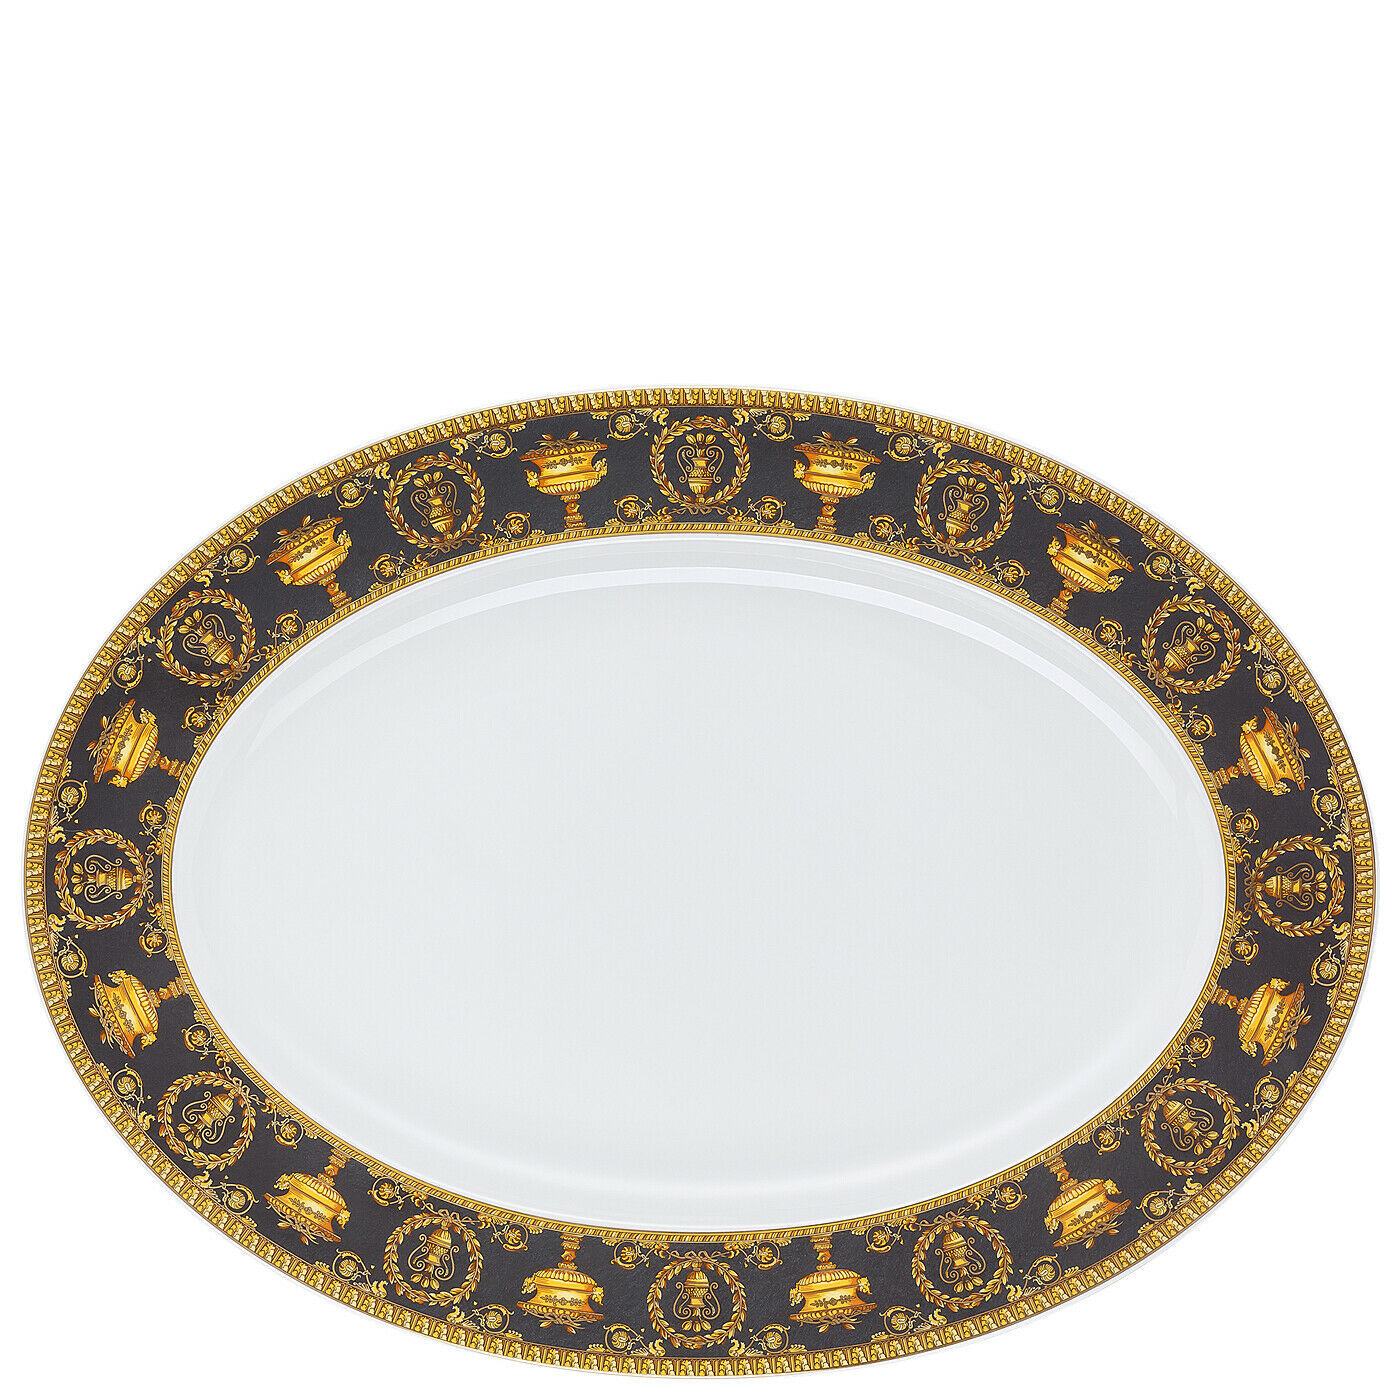 "Primary image for Versace Baroque Nero Platter 40 cm/15"" Porcelain Made in Italy"